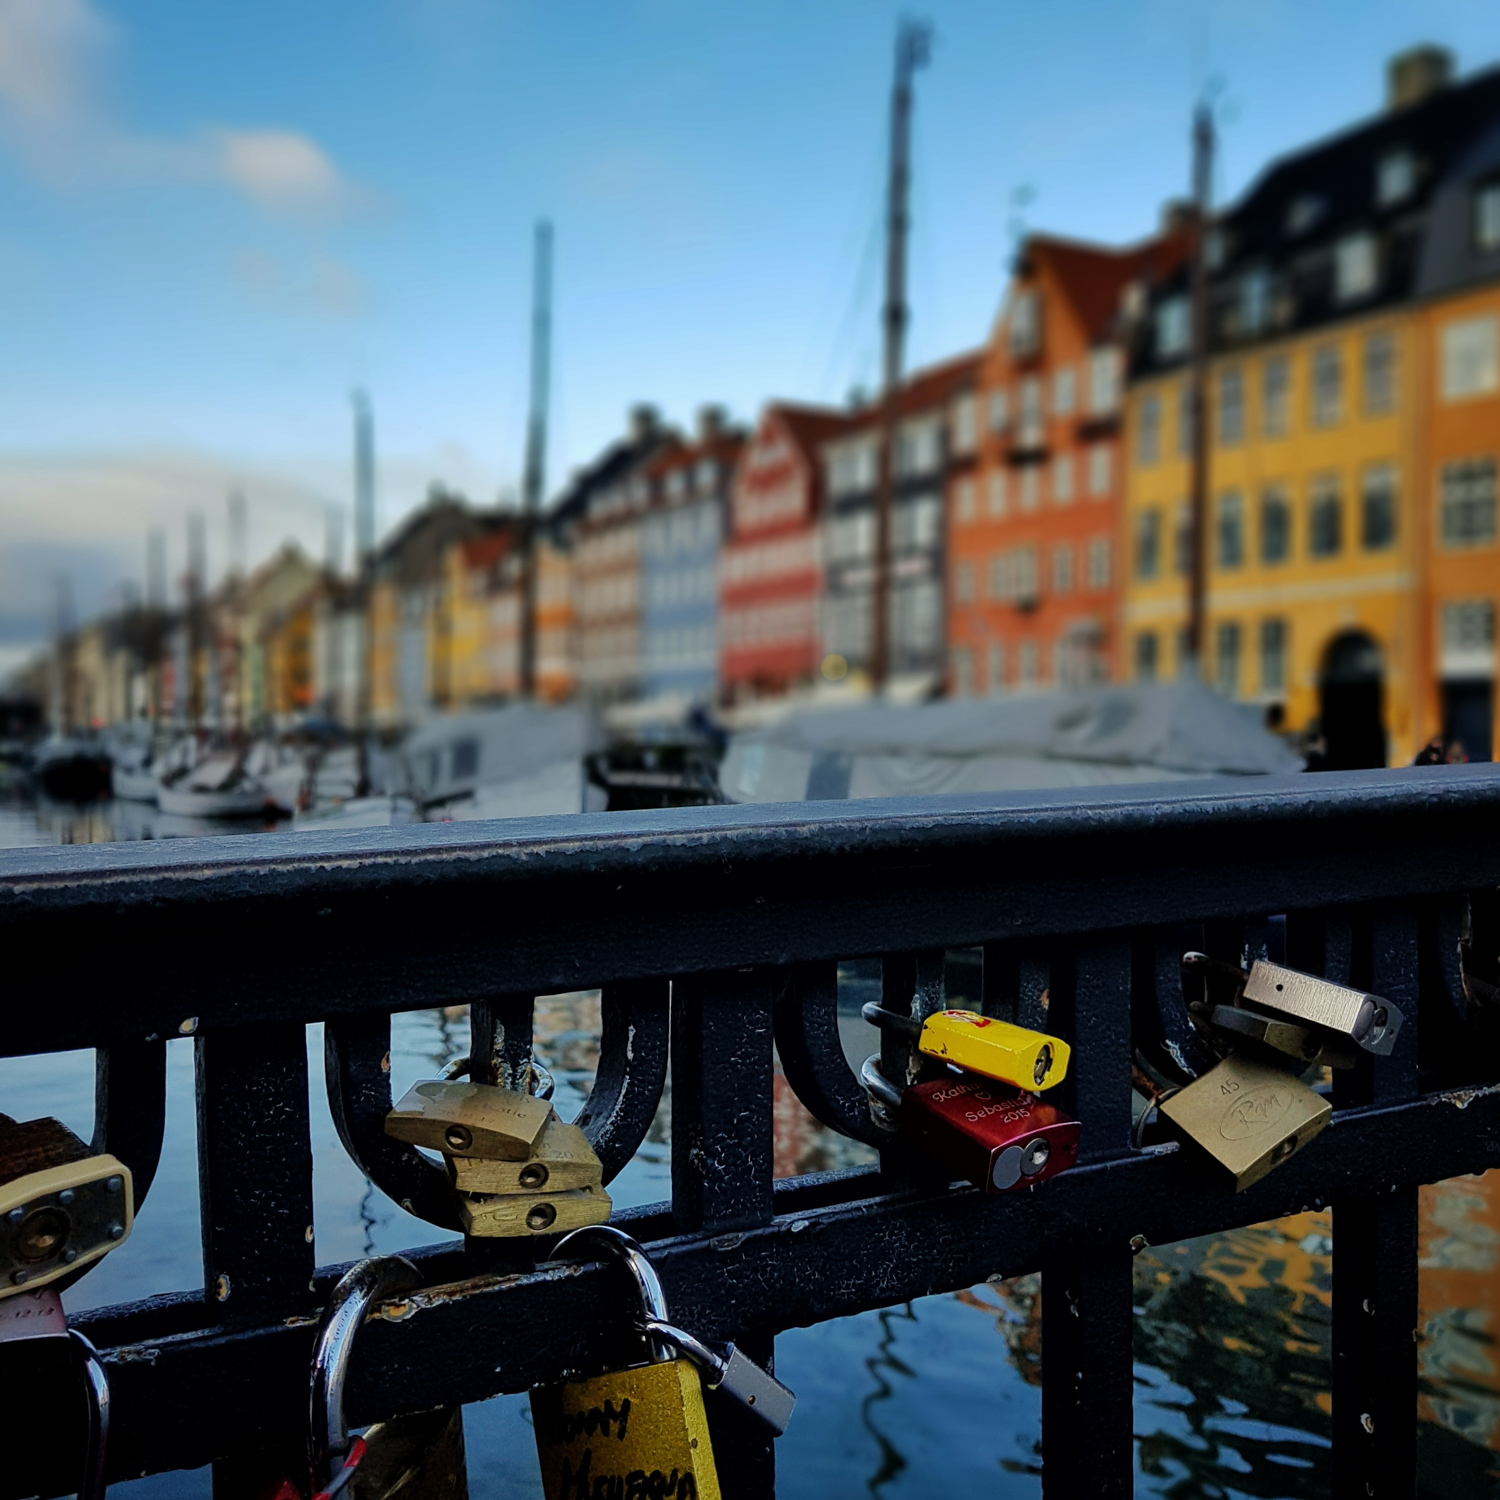 January 5 - Love locks in Copenhagen